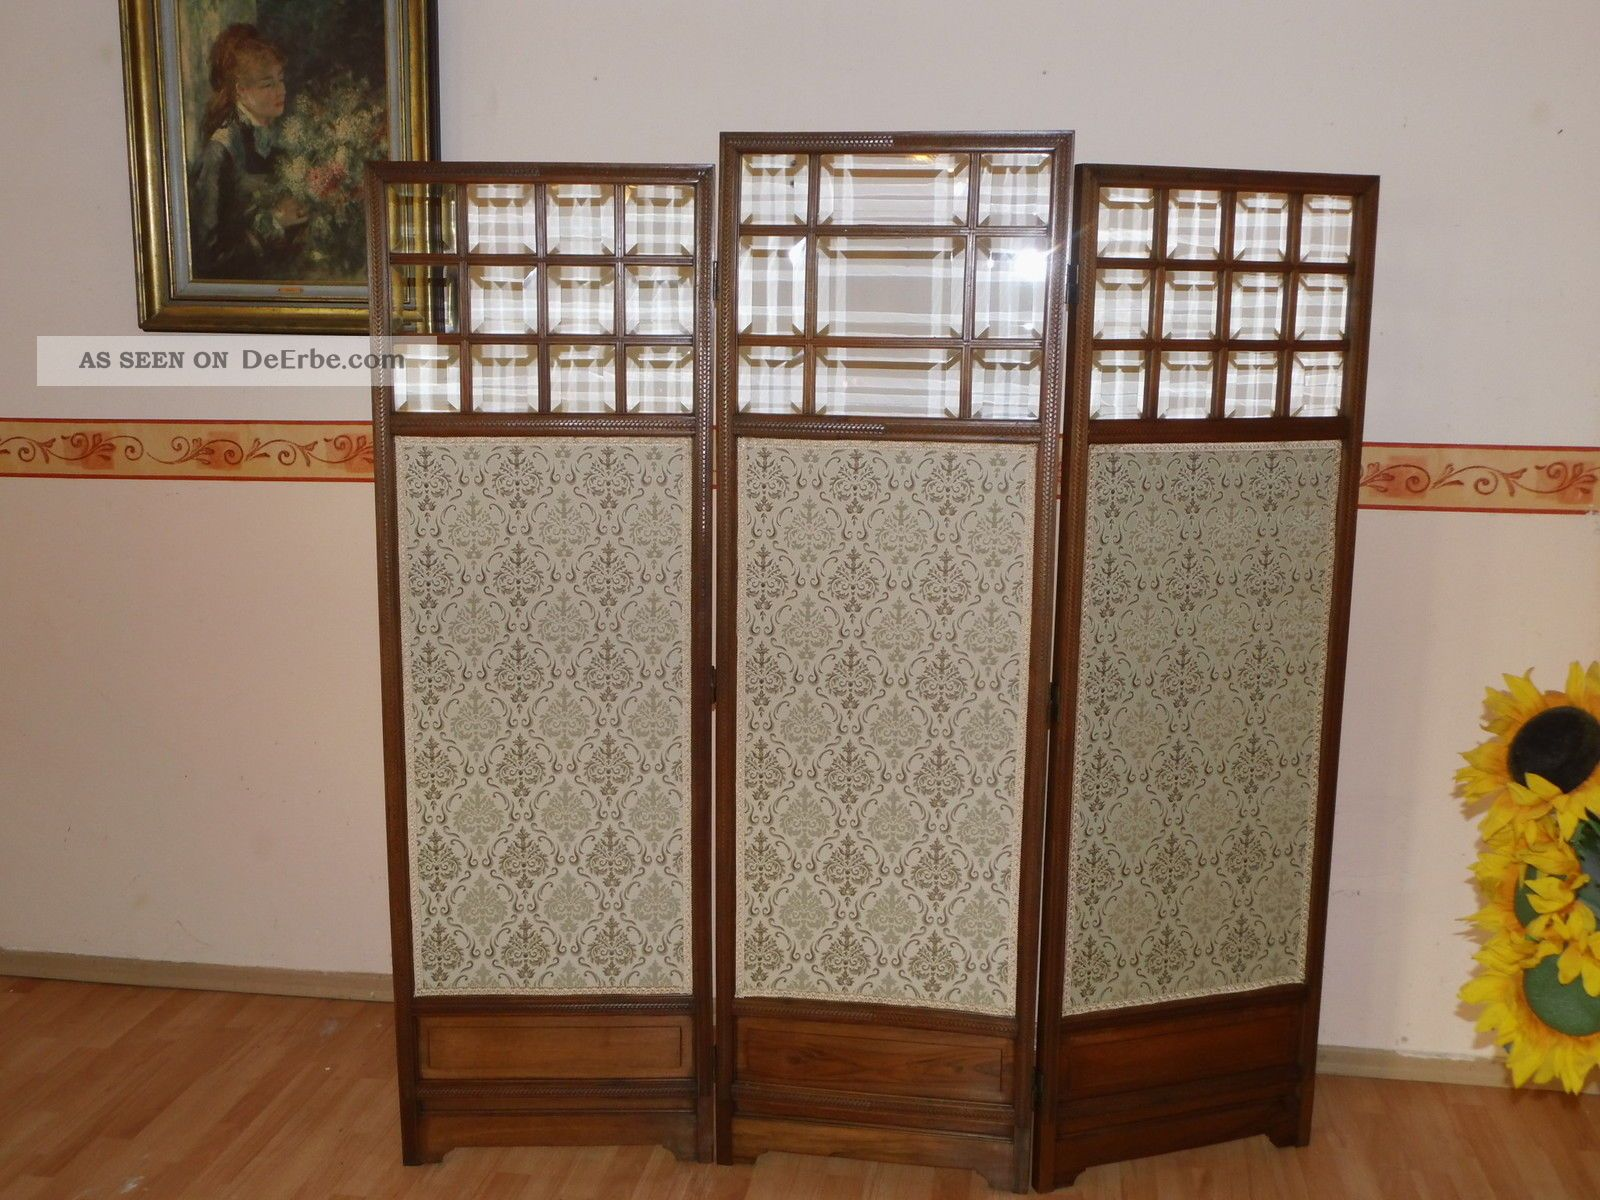 originales jugendstil paravent raumteiler kirschholz um1910 top. Black Bedroom Furniture Sets. Home Design Ideas